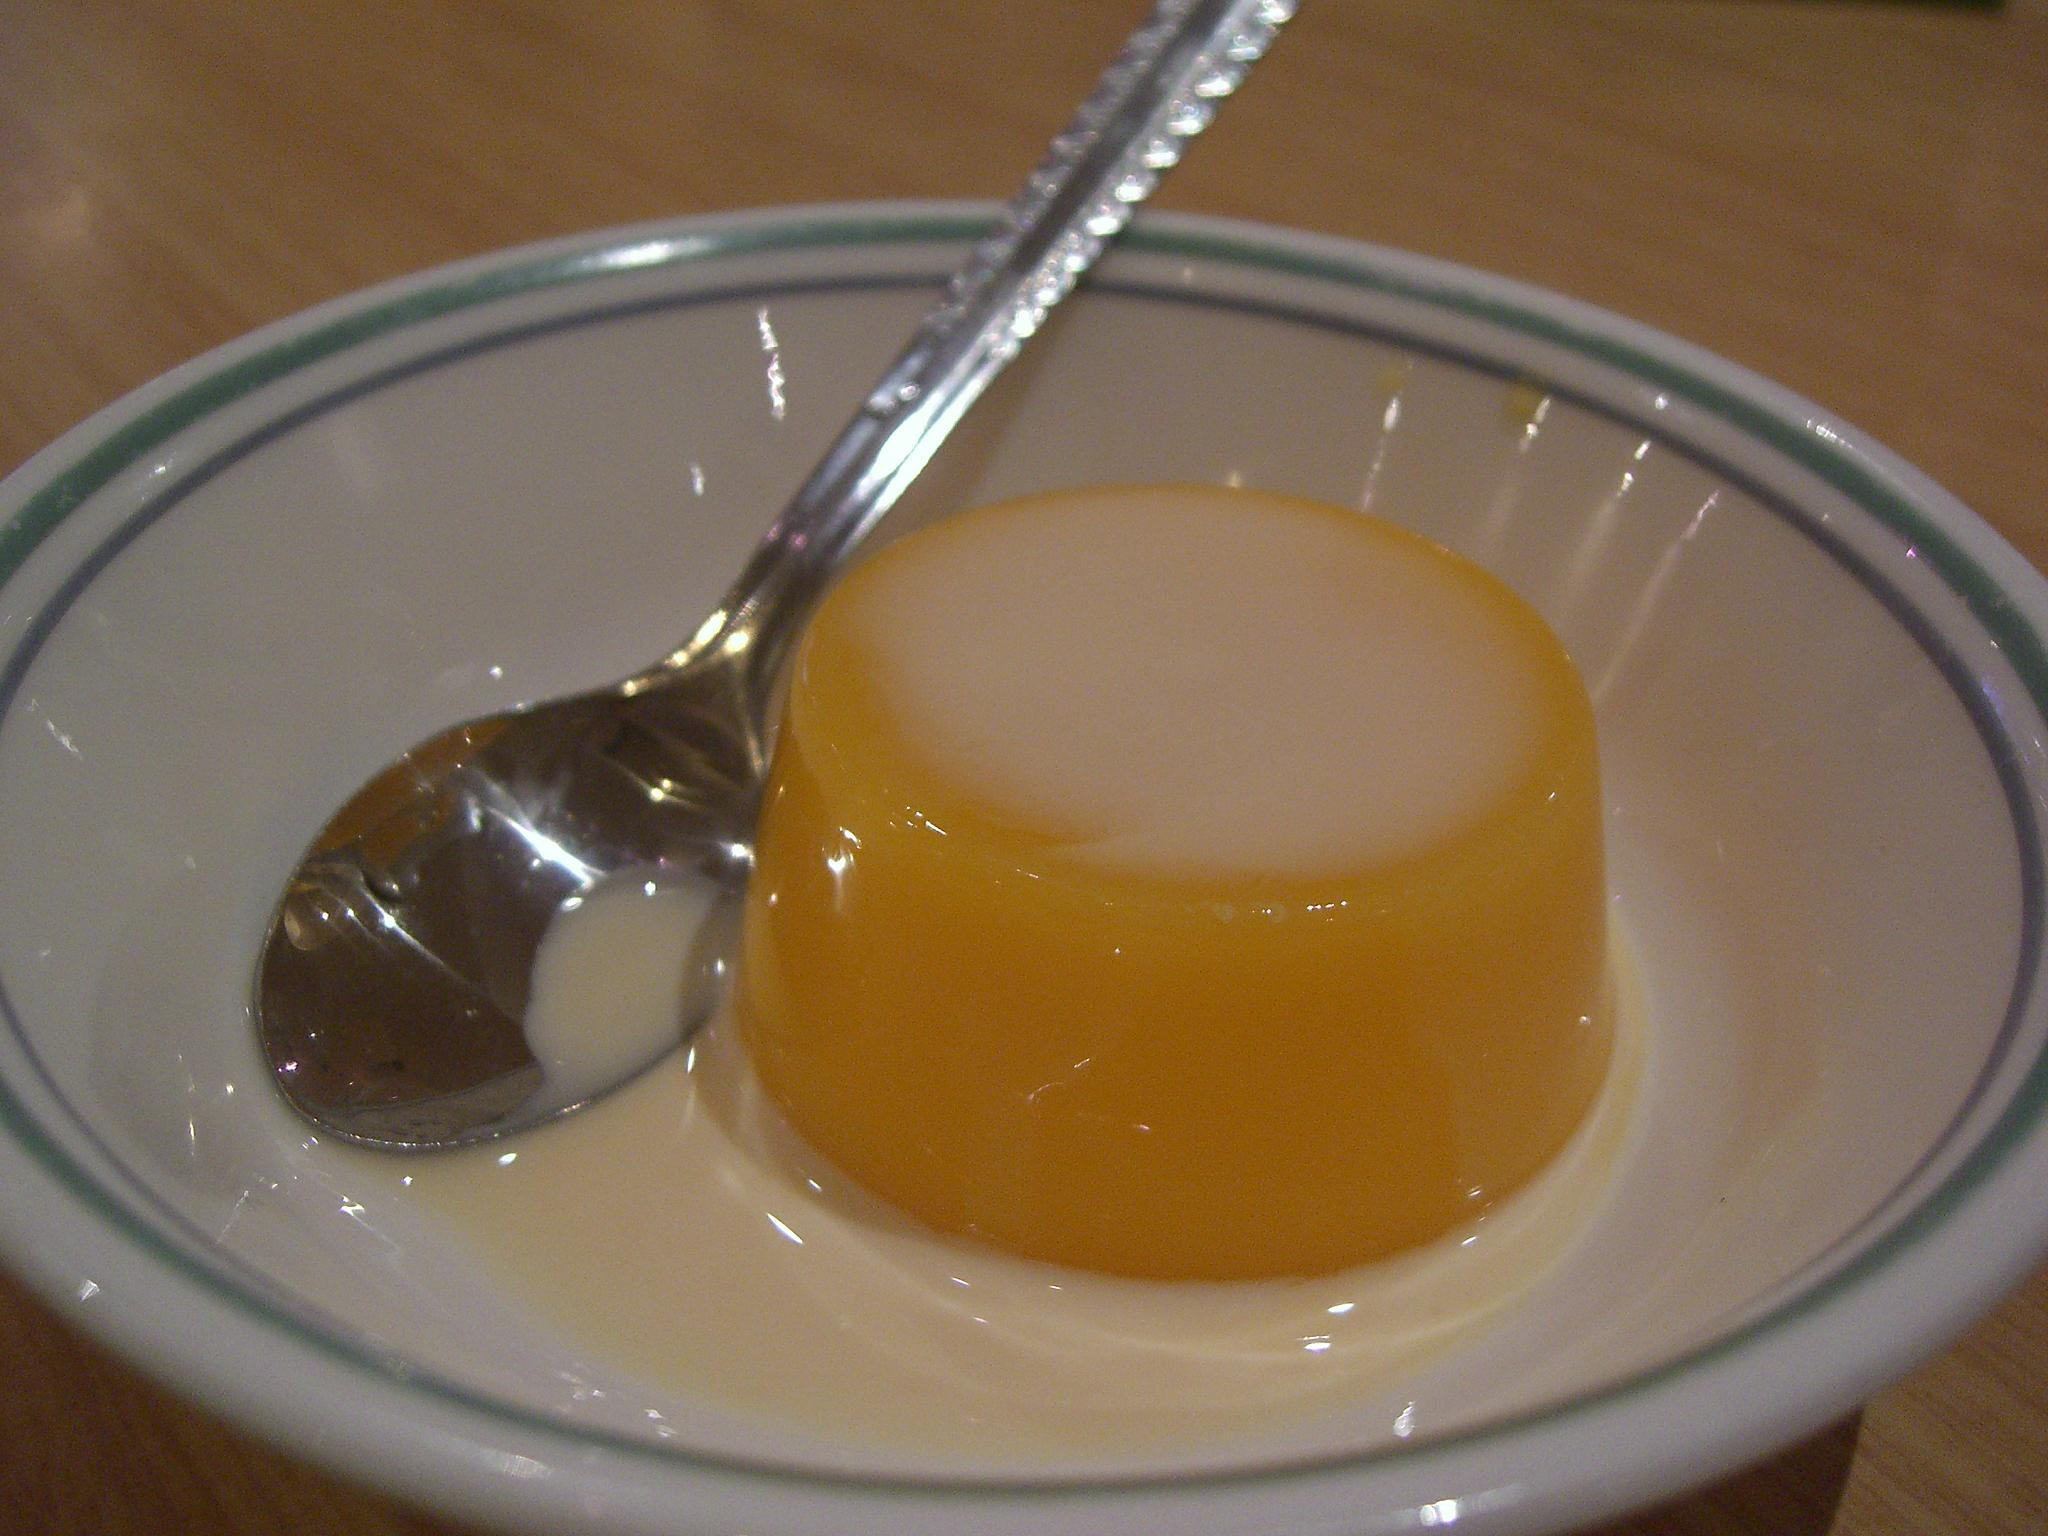 https://commons.wikimedia.org/wiki/File:Mango_pudding_by_avlxyz_in_Melbourne.jpg